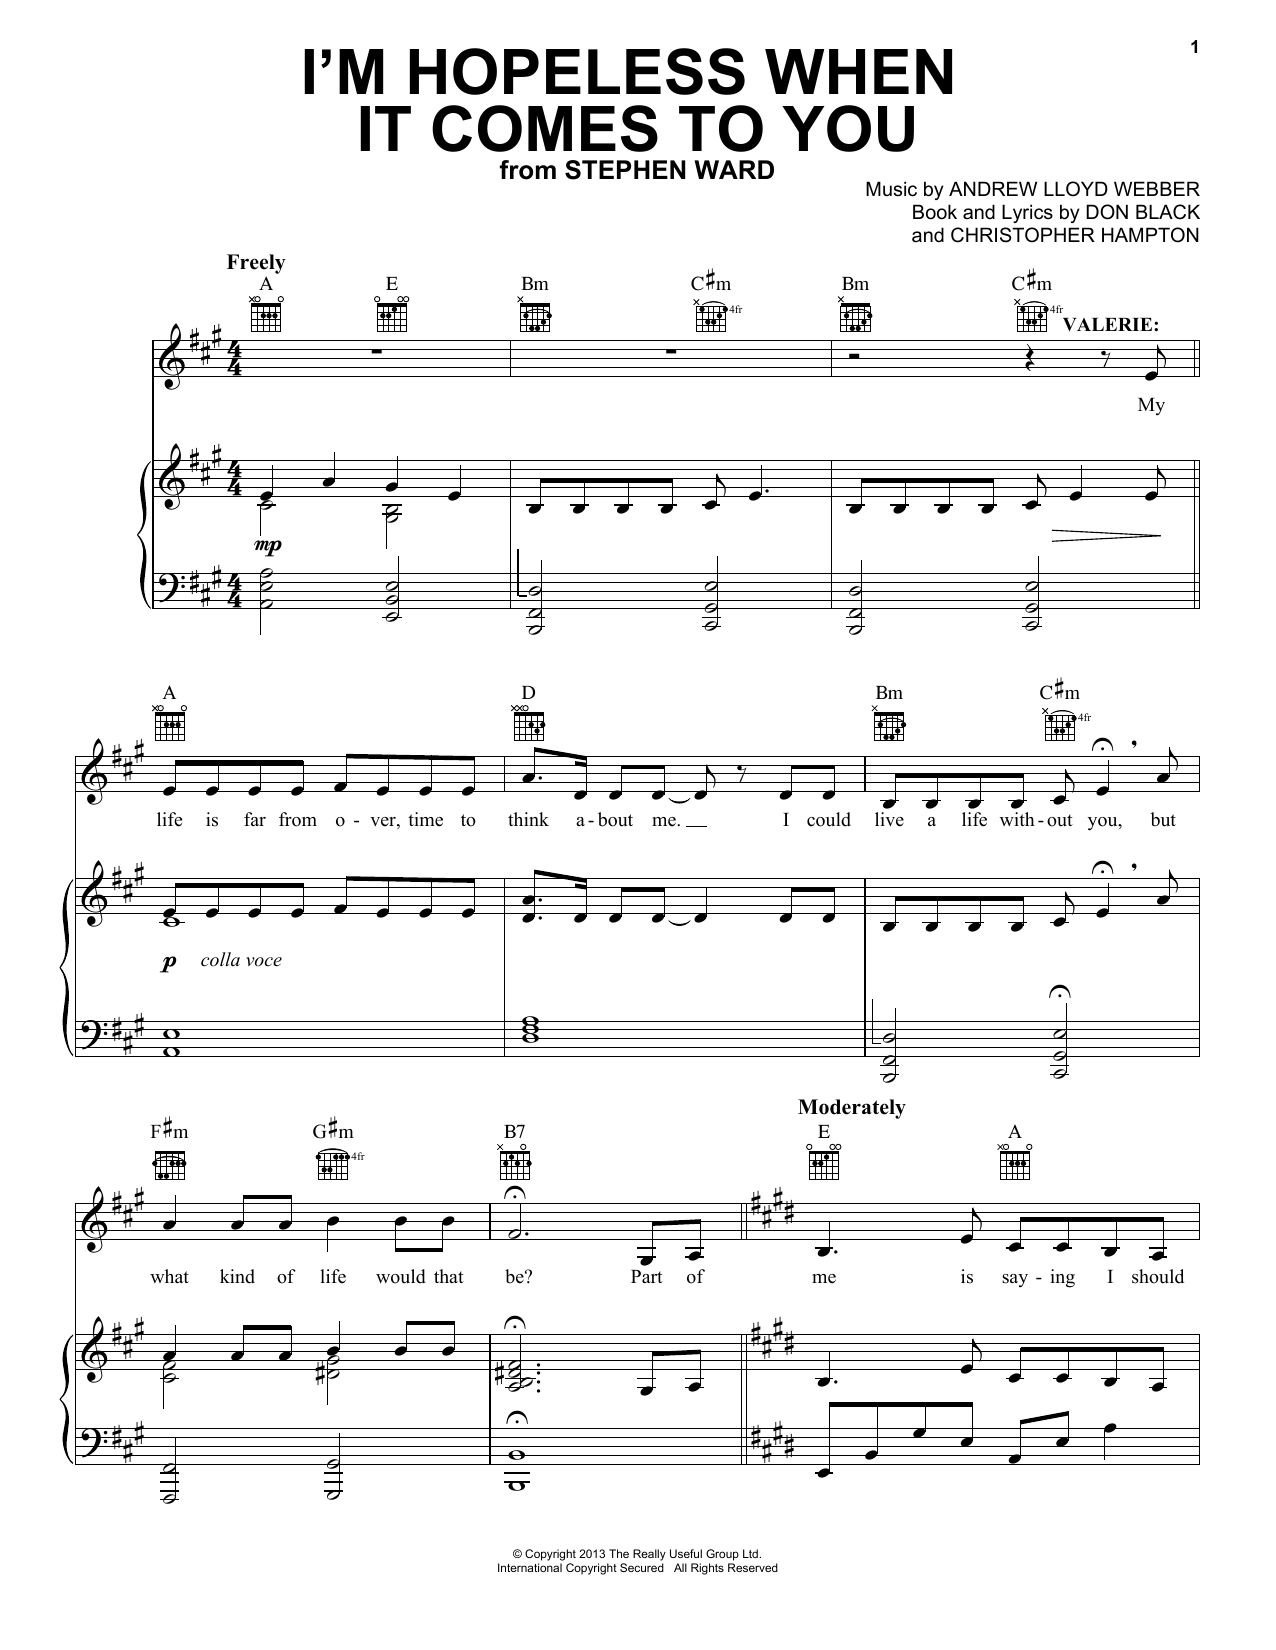 Andrew Lloyd Webber I'm Hopeless When It Comes To You (from Stephen Ward) sheet music notes and chords. Download Printable PDF.